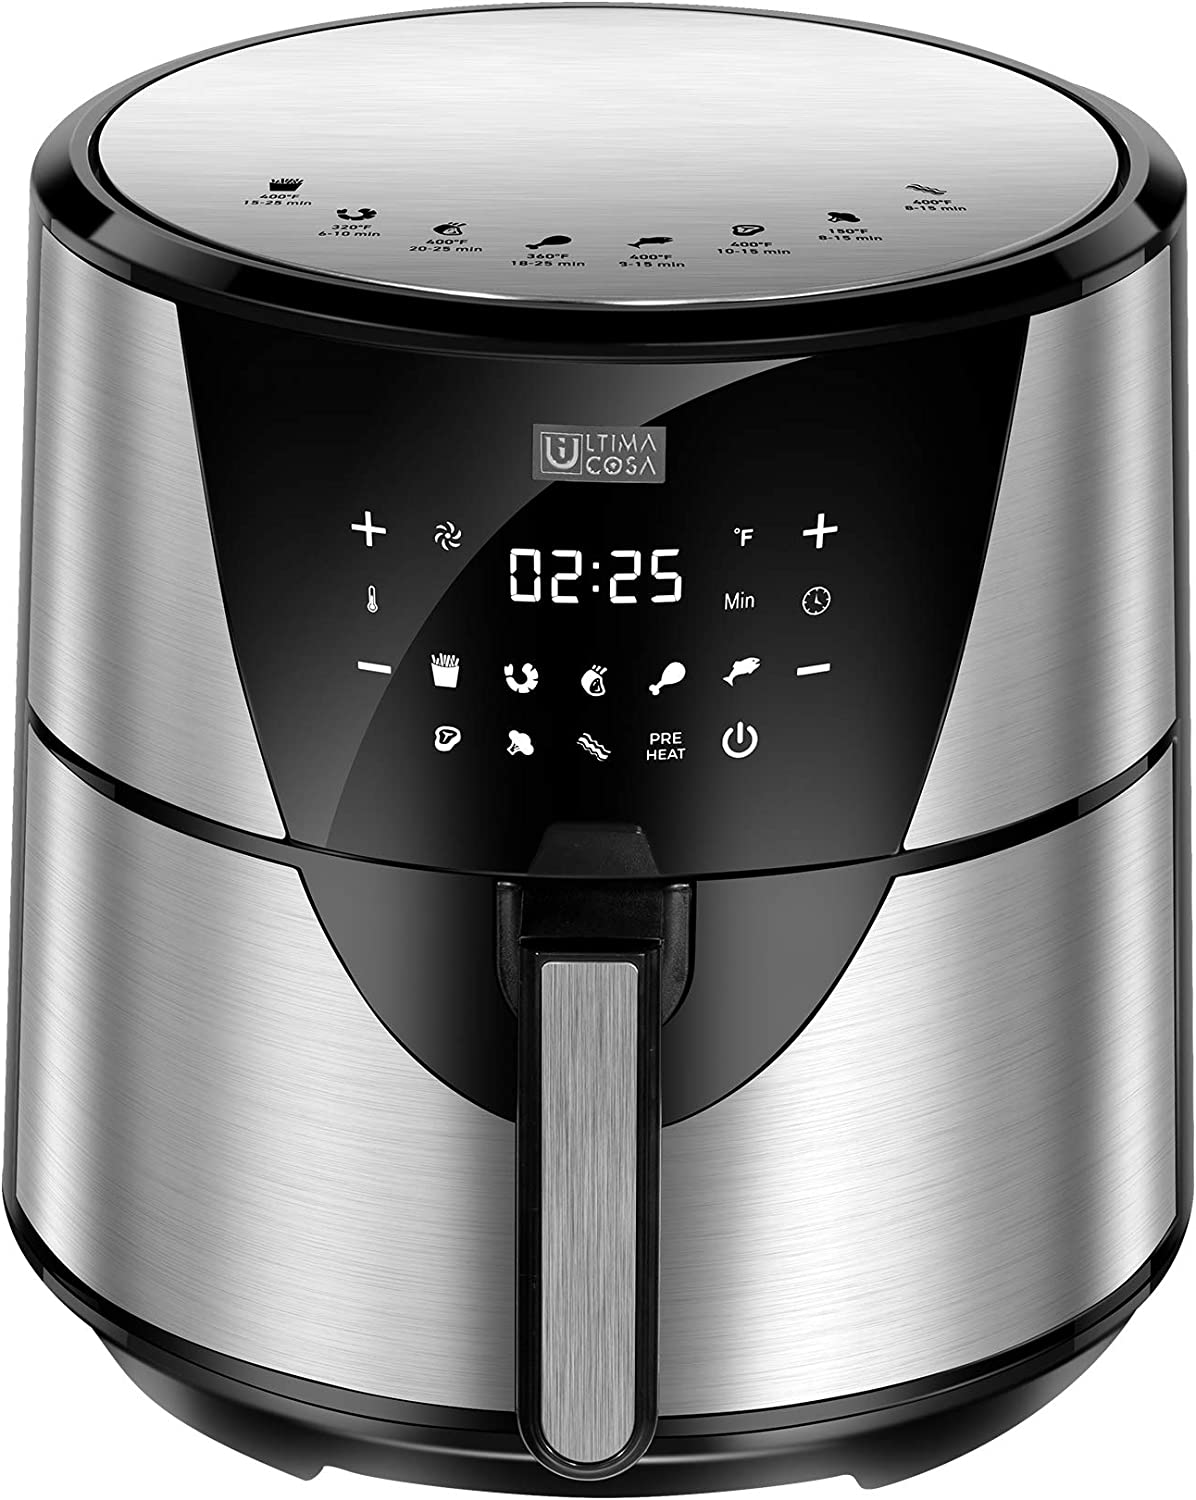 Ultima Cosa Air Fryer, 8.5QT Oil Free XL Electric Hot Air Fryers Oven, Programmable 9-in-1 Cooker with Preheat & Dryout, Equipped Digital Touchscreen and Nonstick Basket, English and French Manual , 1700W